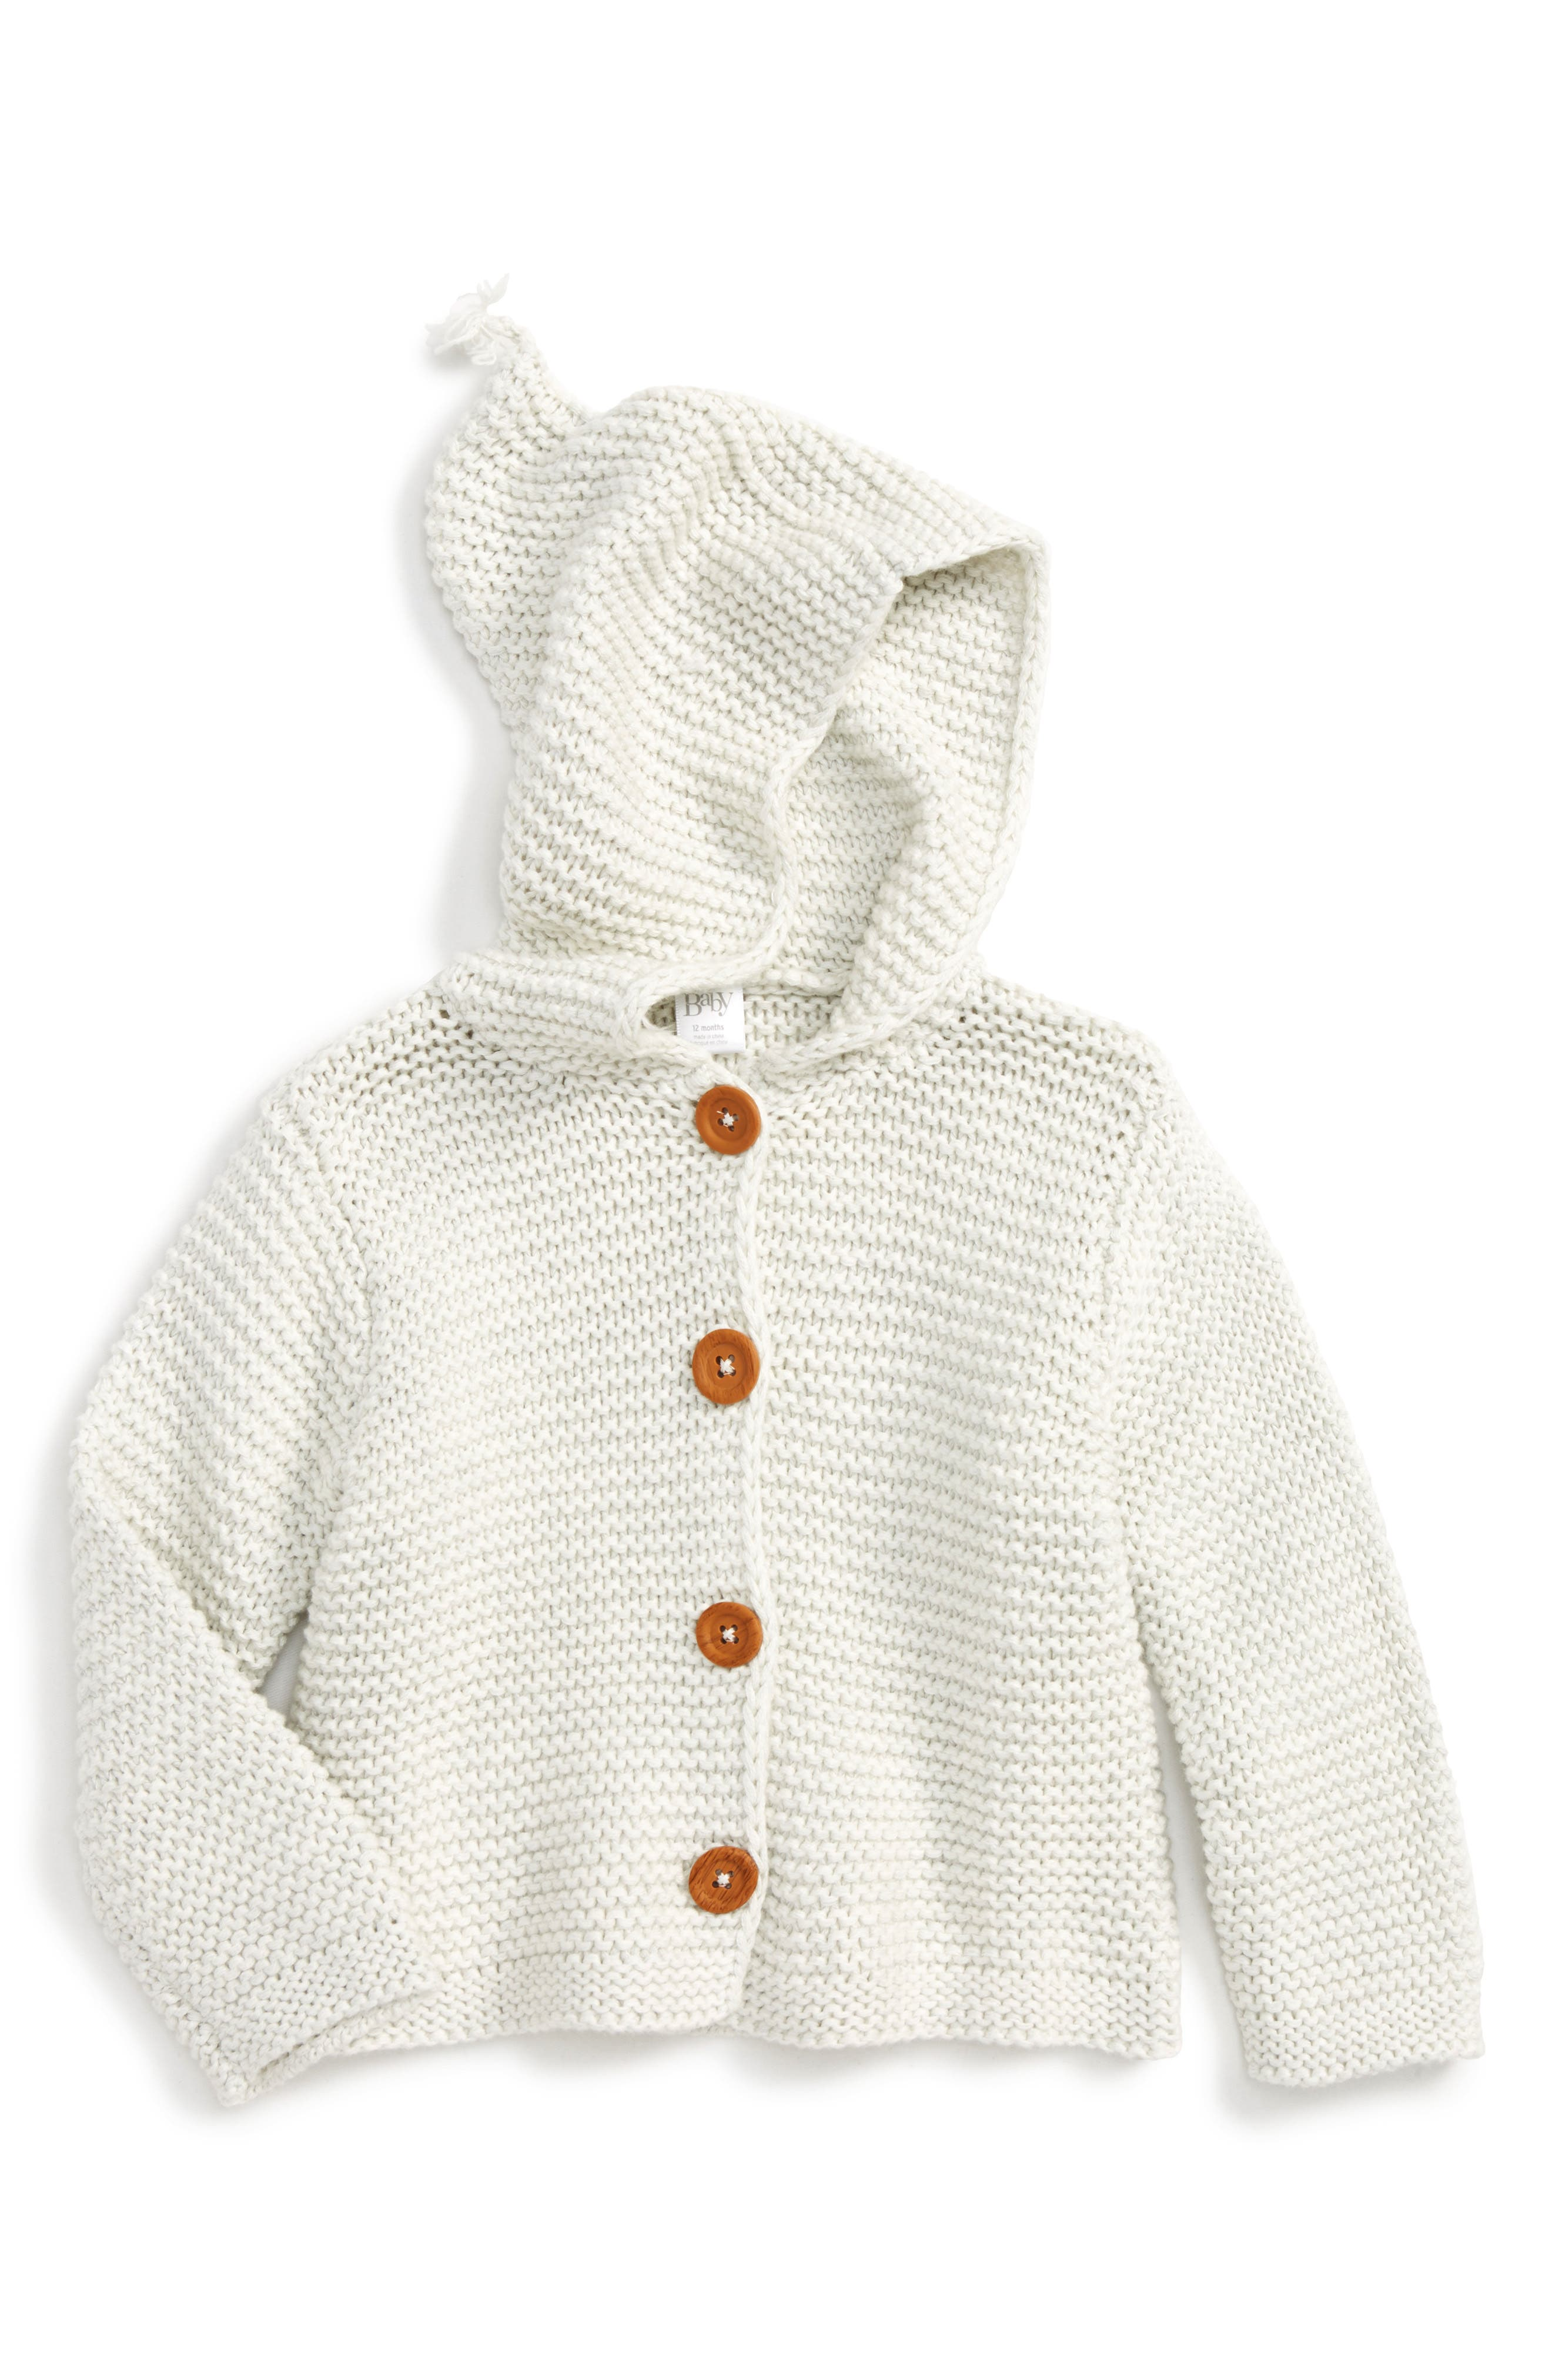 Alternate Image 1 Selected - Nordstrom Baby Organic Cotton Hooded Cardigan (Baby)